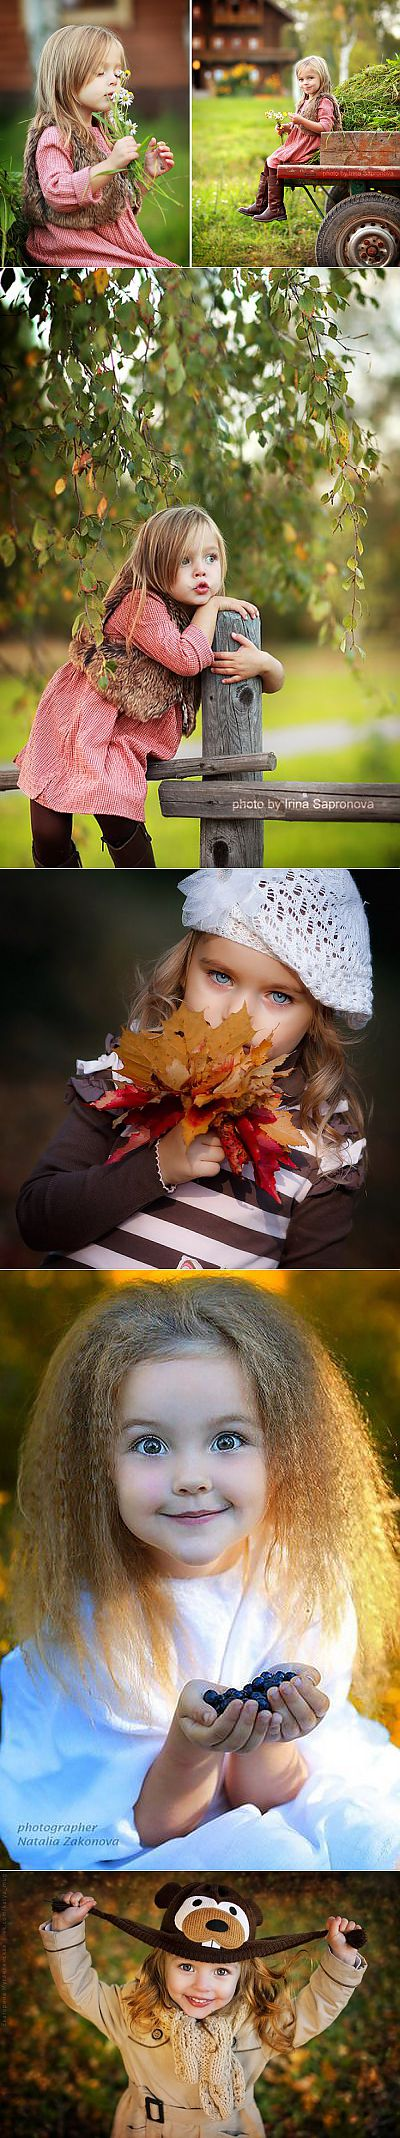 Dobroutreny... Autumn suns | Cool pictures